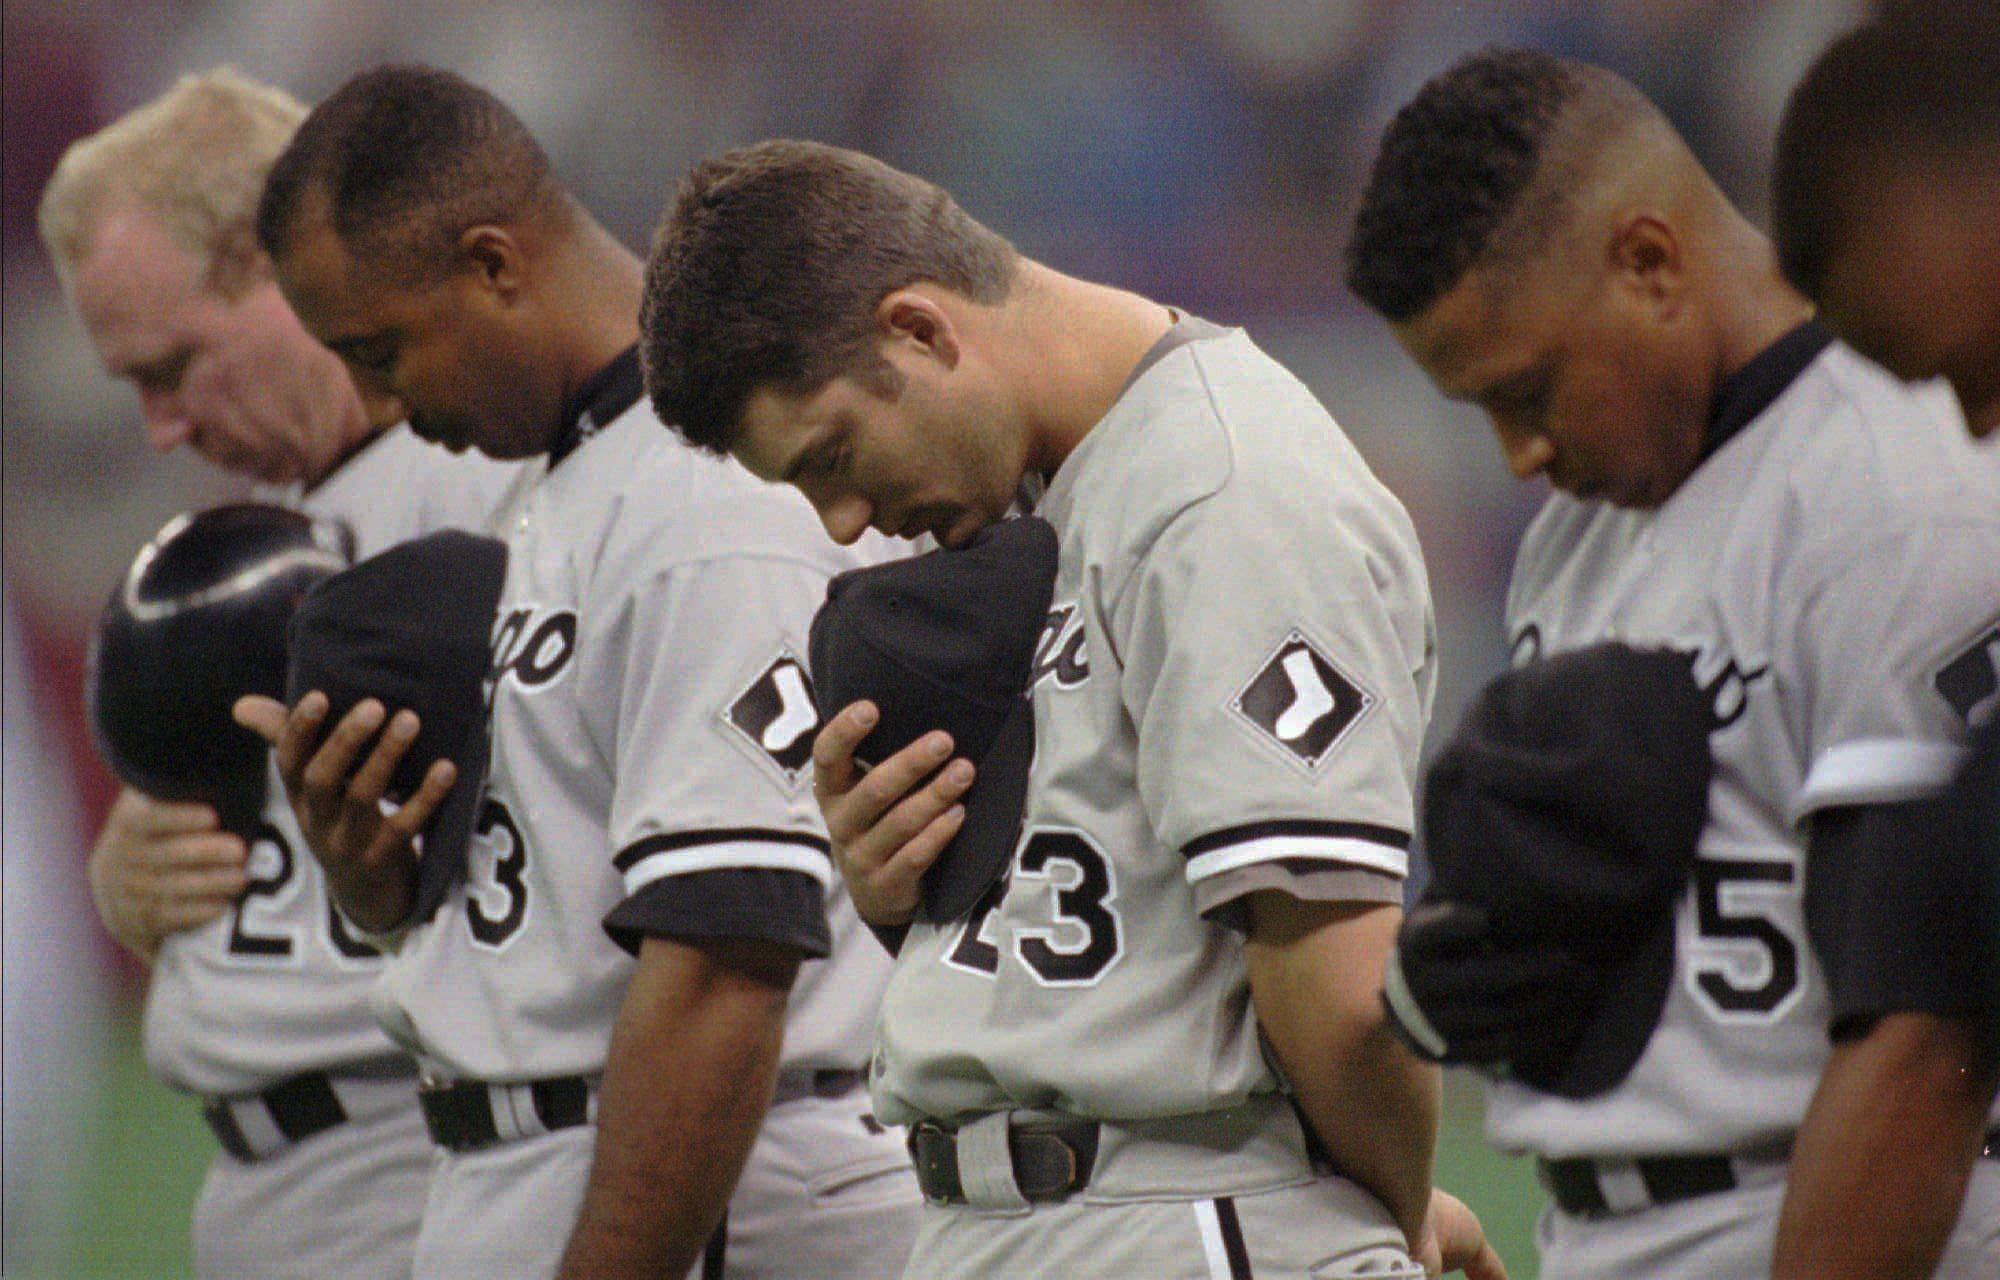 Chicago White Sox Ron Karkovice, left, Harold Baines, Robin Ventura and Danny Tartabull bow their heads during a moment of silence before their game against the Seattle Mariners Tuesday, April 2, 1996, in Seattle, in honor of umpire John McSherry. McSherry collasped and died during a ball game Monday. The Mariners won, 3-2.